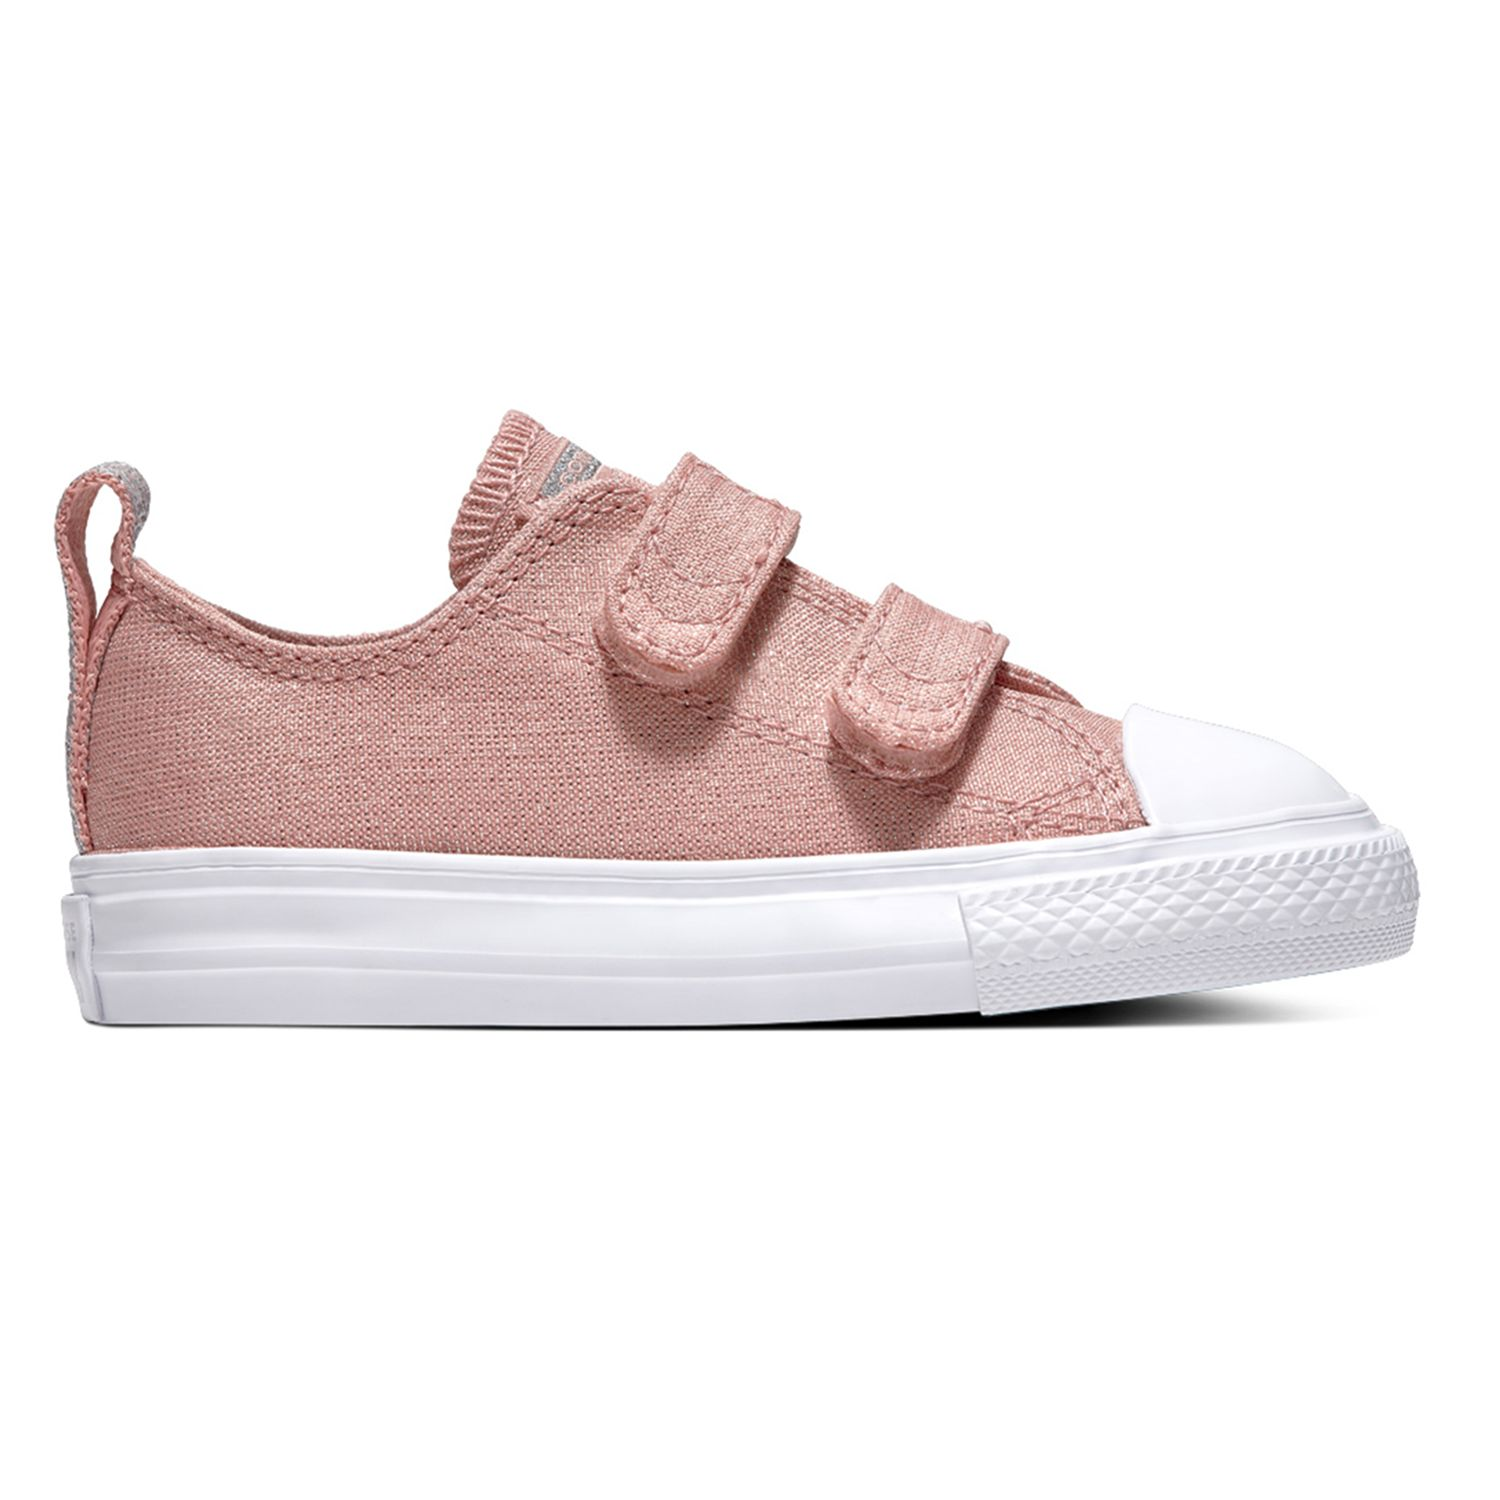 9995f804115 pink converse toddler - www.giallomare.eu